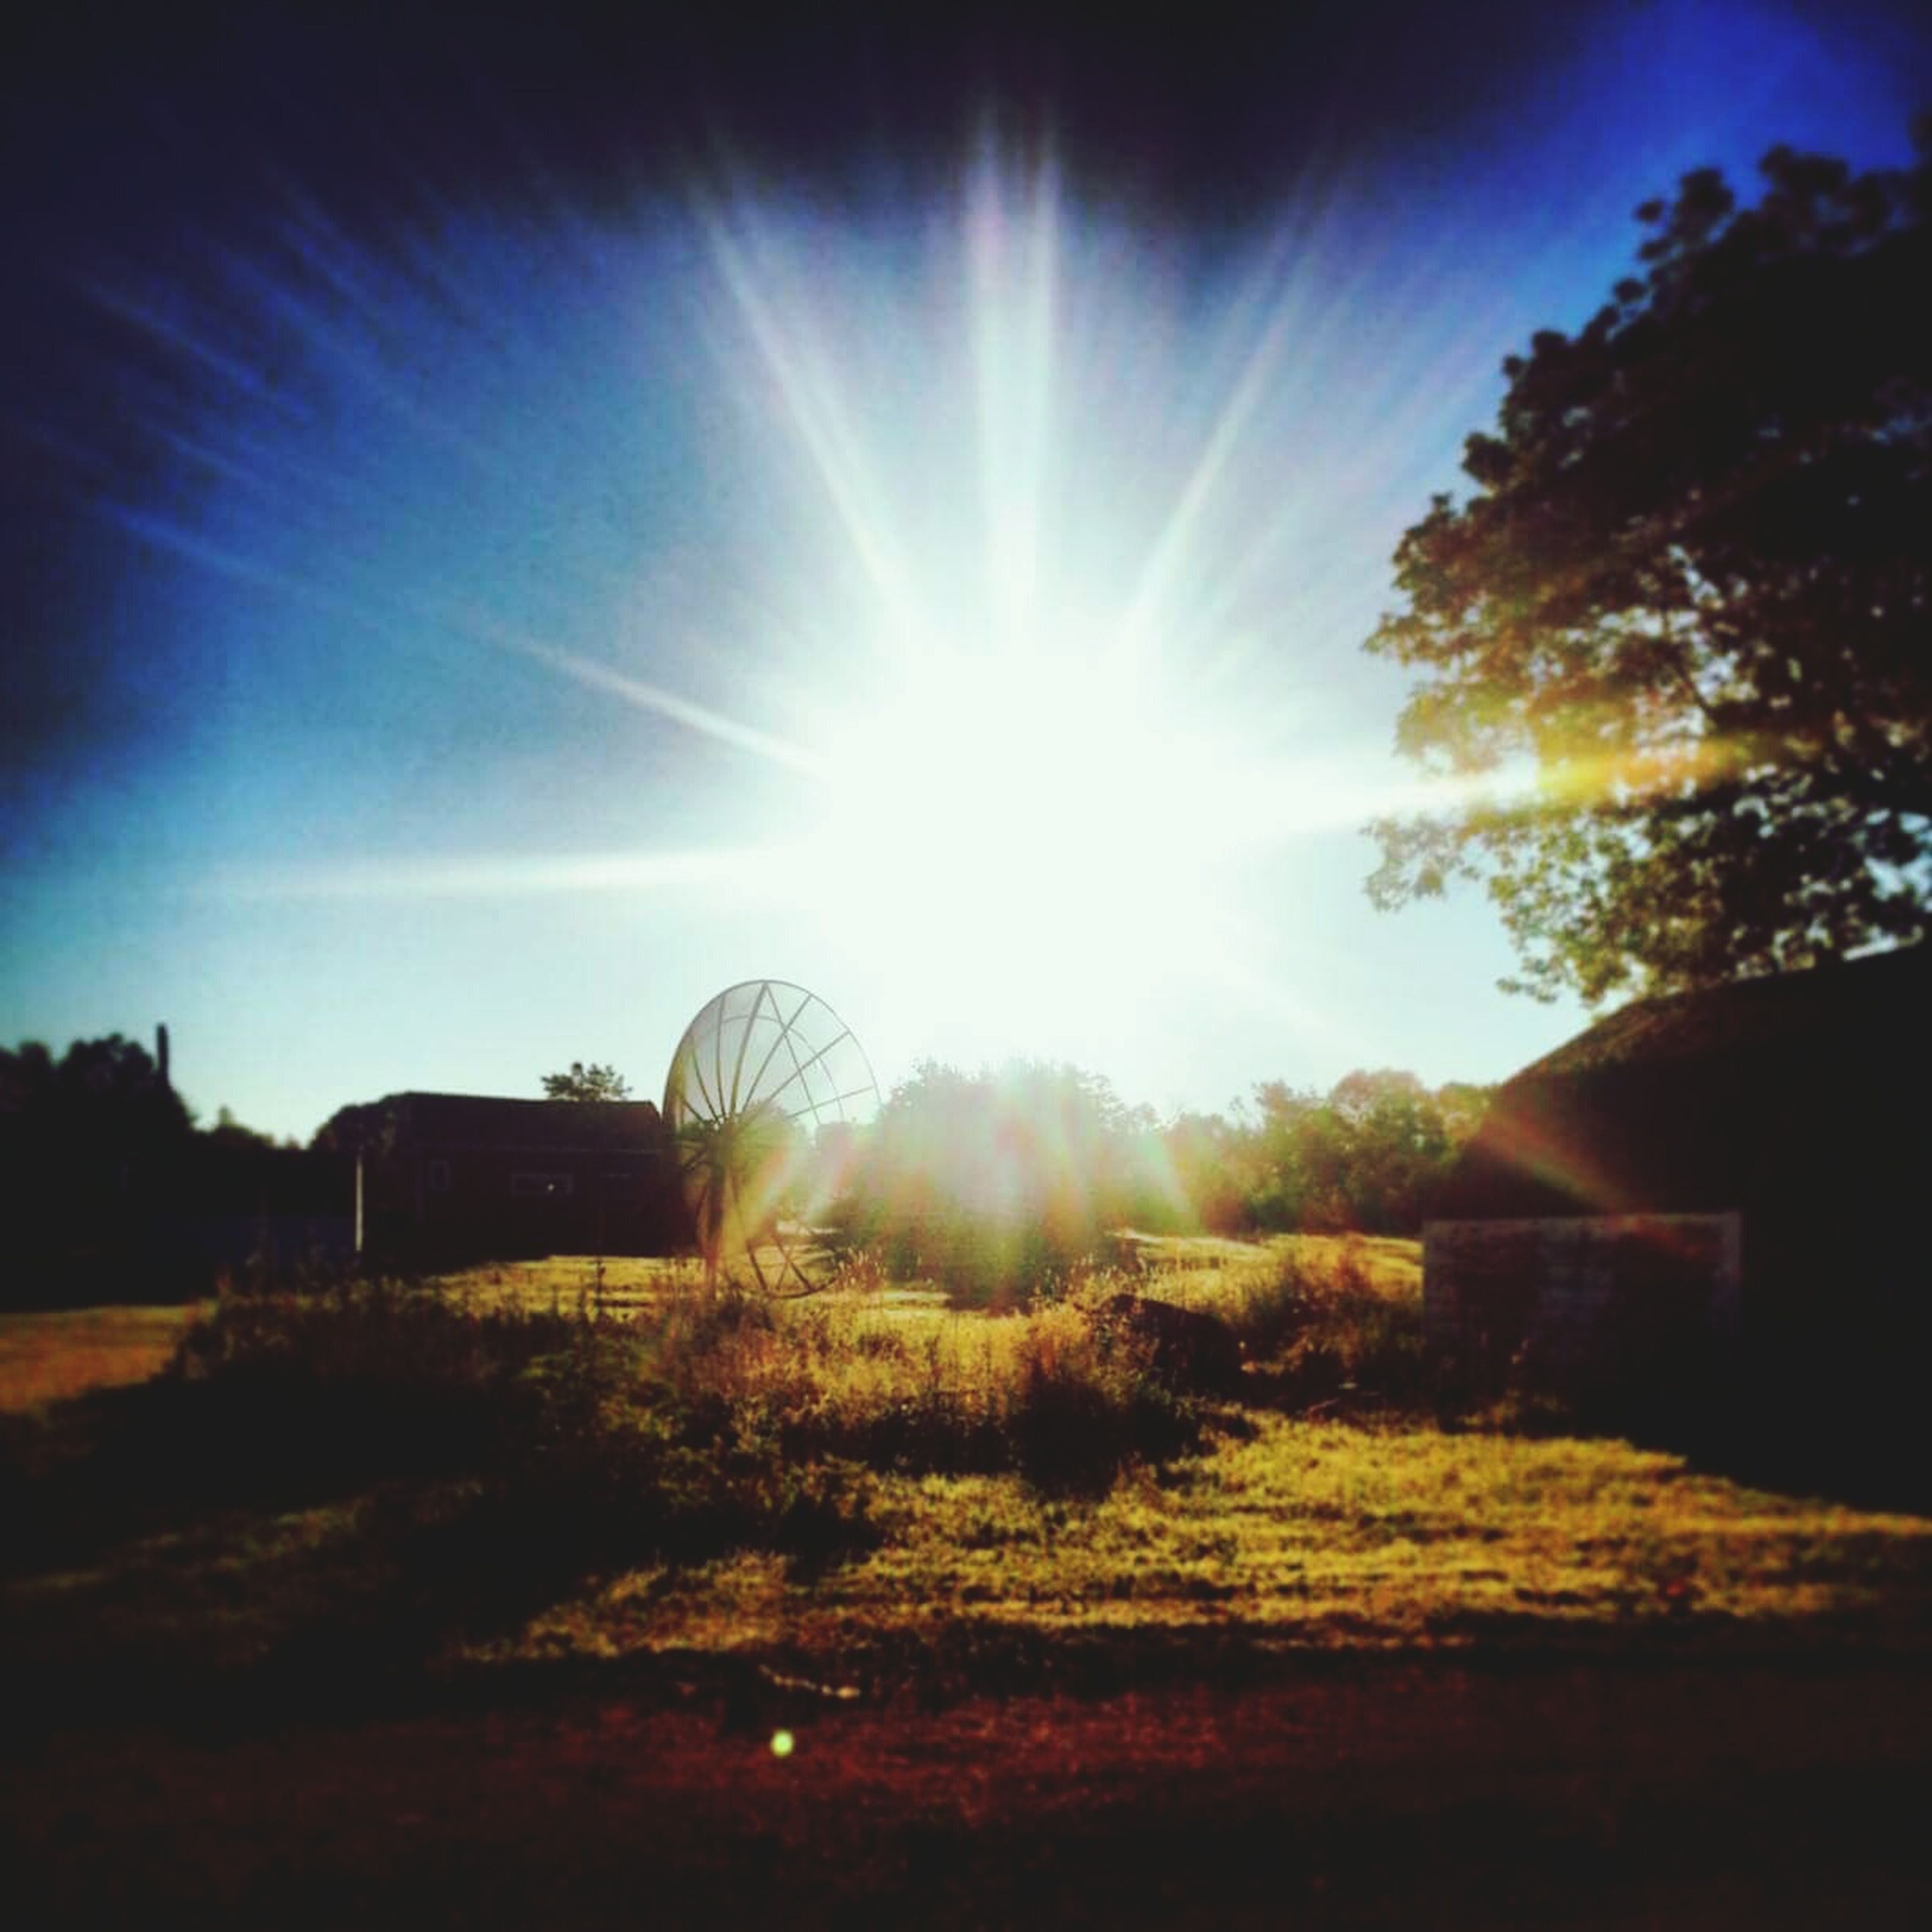 sun, sunbeam, sunlight, lens flare, tree, sky, sunny, built structure, bright, architecture, building exterior, nature, tranquility, landscape, field, shining, day, tranquil scene, house, blue